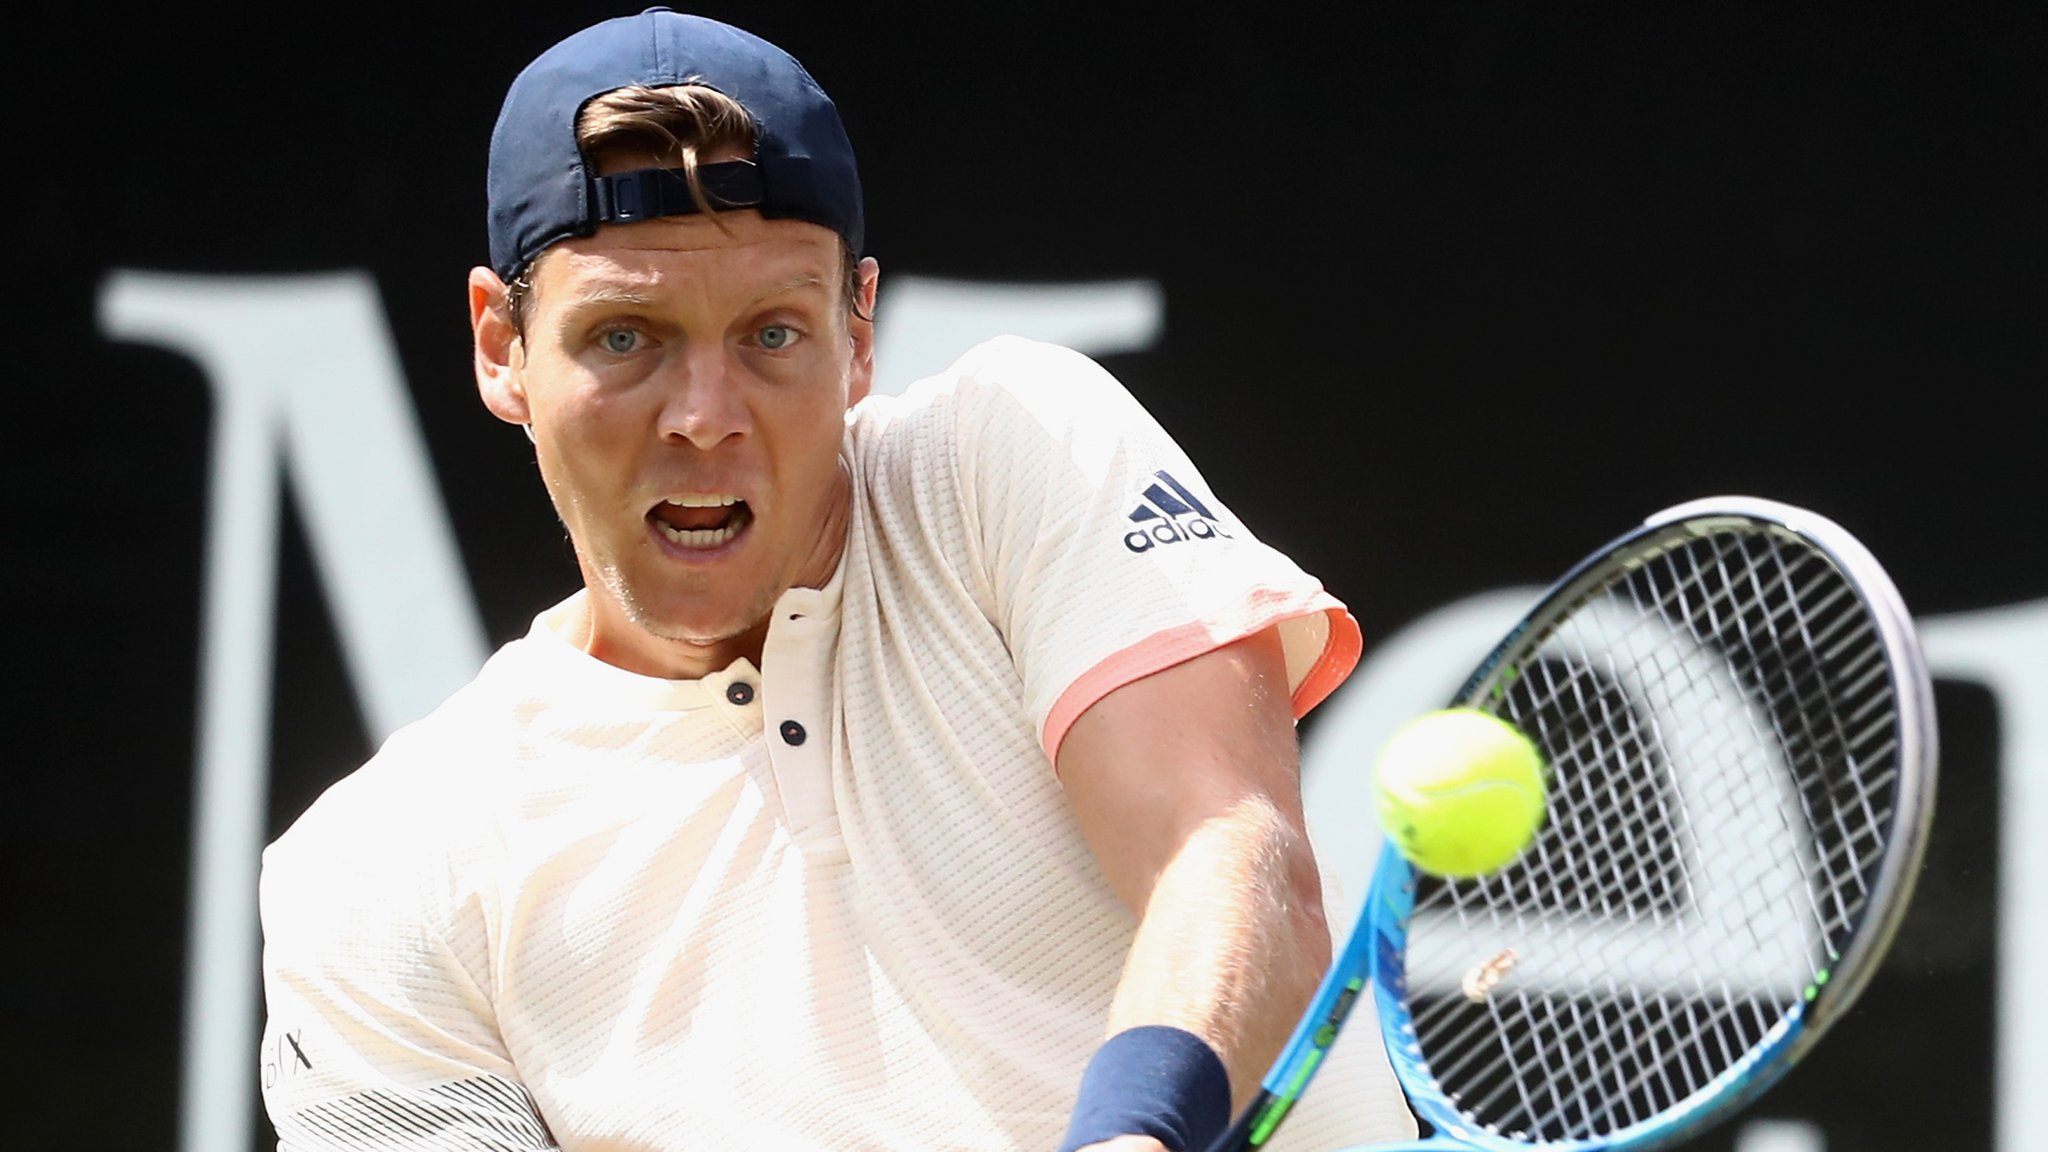 Wimbledon 2018: Tomas Berdych pulls out with back injury